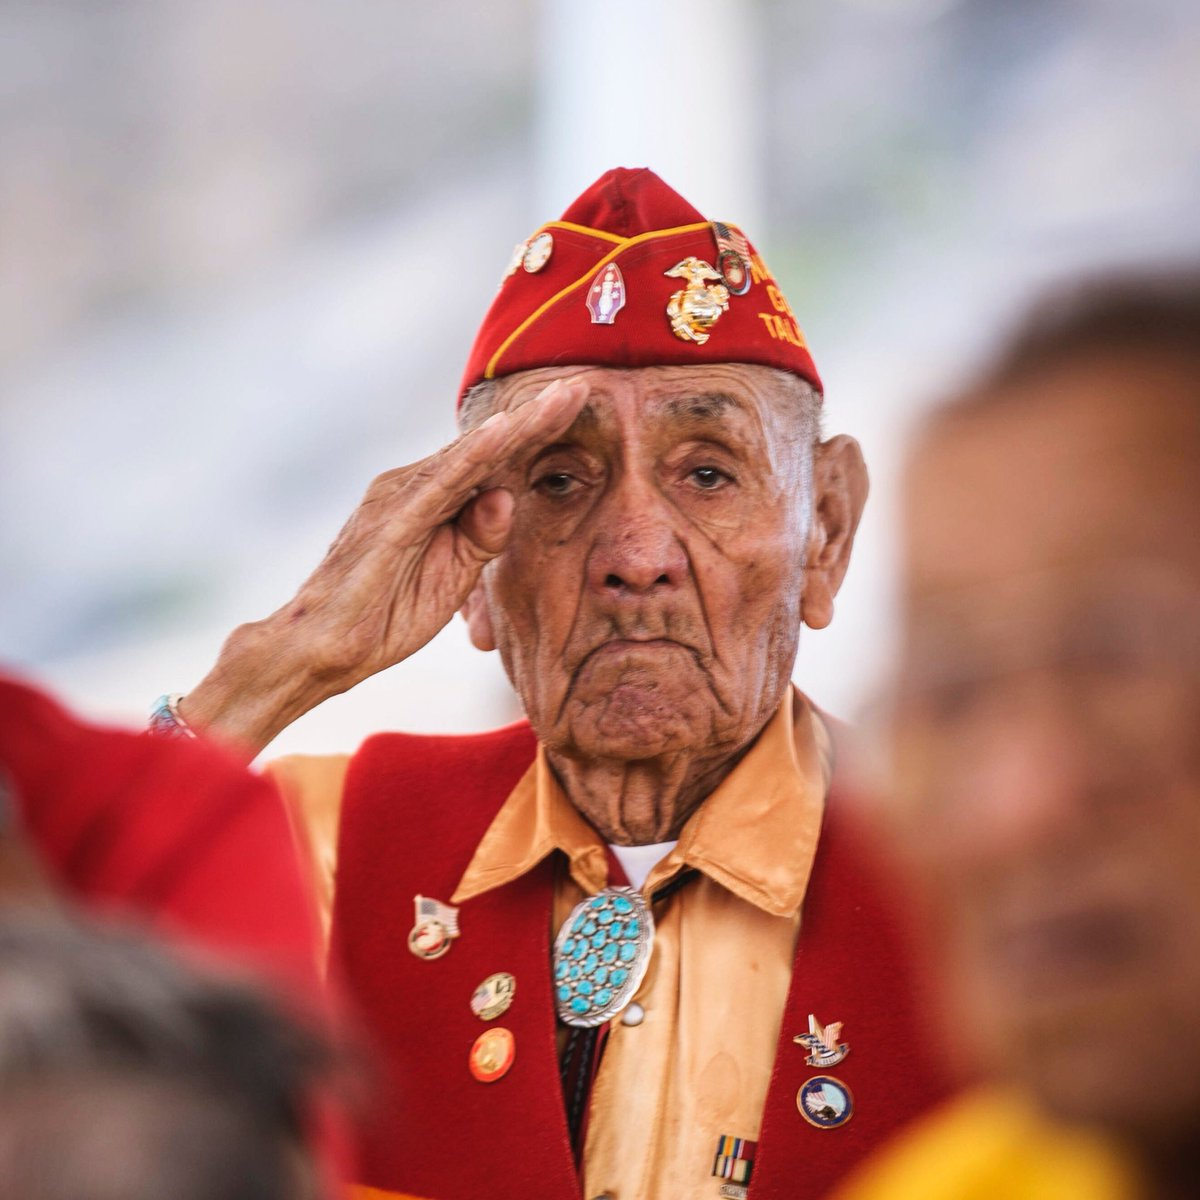 Honor the Fallen  Yesterday the Corps lost Navajo Code Talker George B. Willie Sr.  Semper Fidelis, Marine.  More: https://t.co/gW7njA0tO6